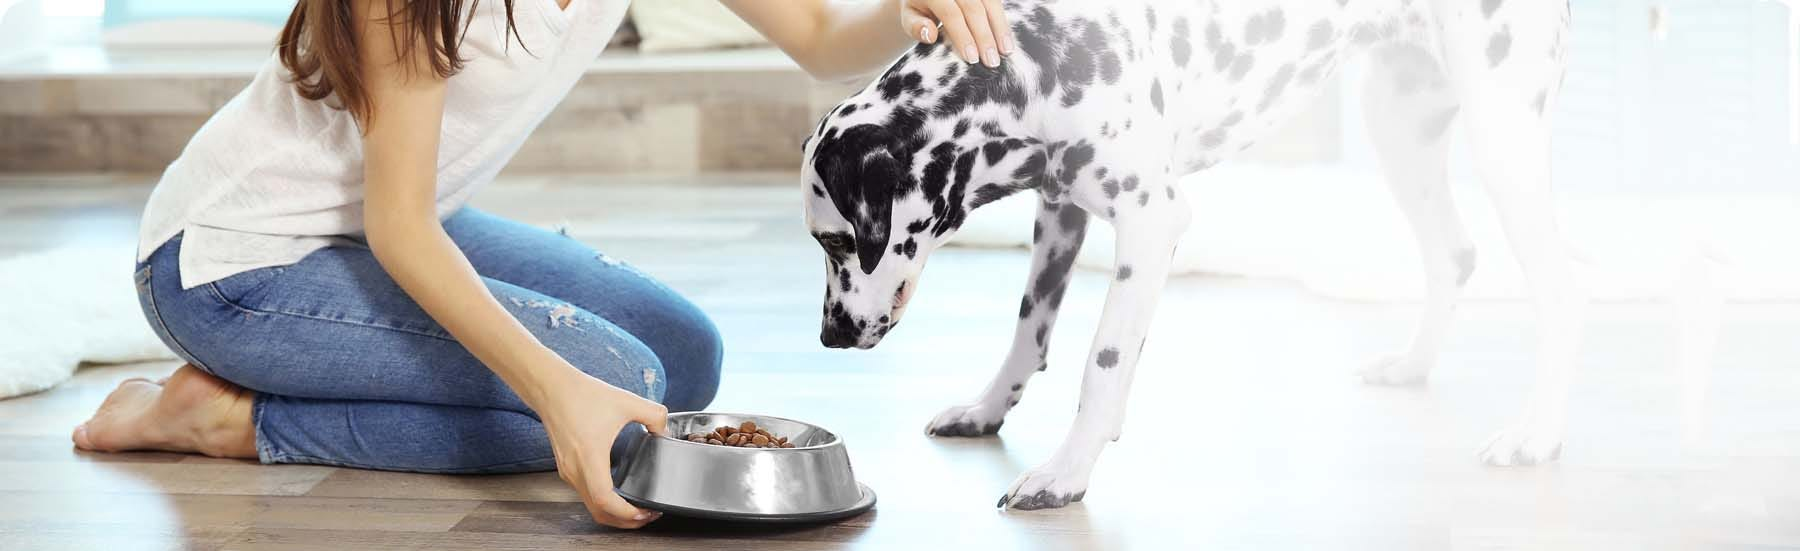 Providing highly tailored nutritional foods for dogs and cats, the Royal Canin range includes Vetcare Nutrition, Veterinary Diet and Breed Health.